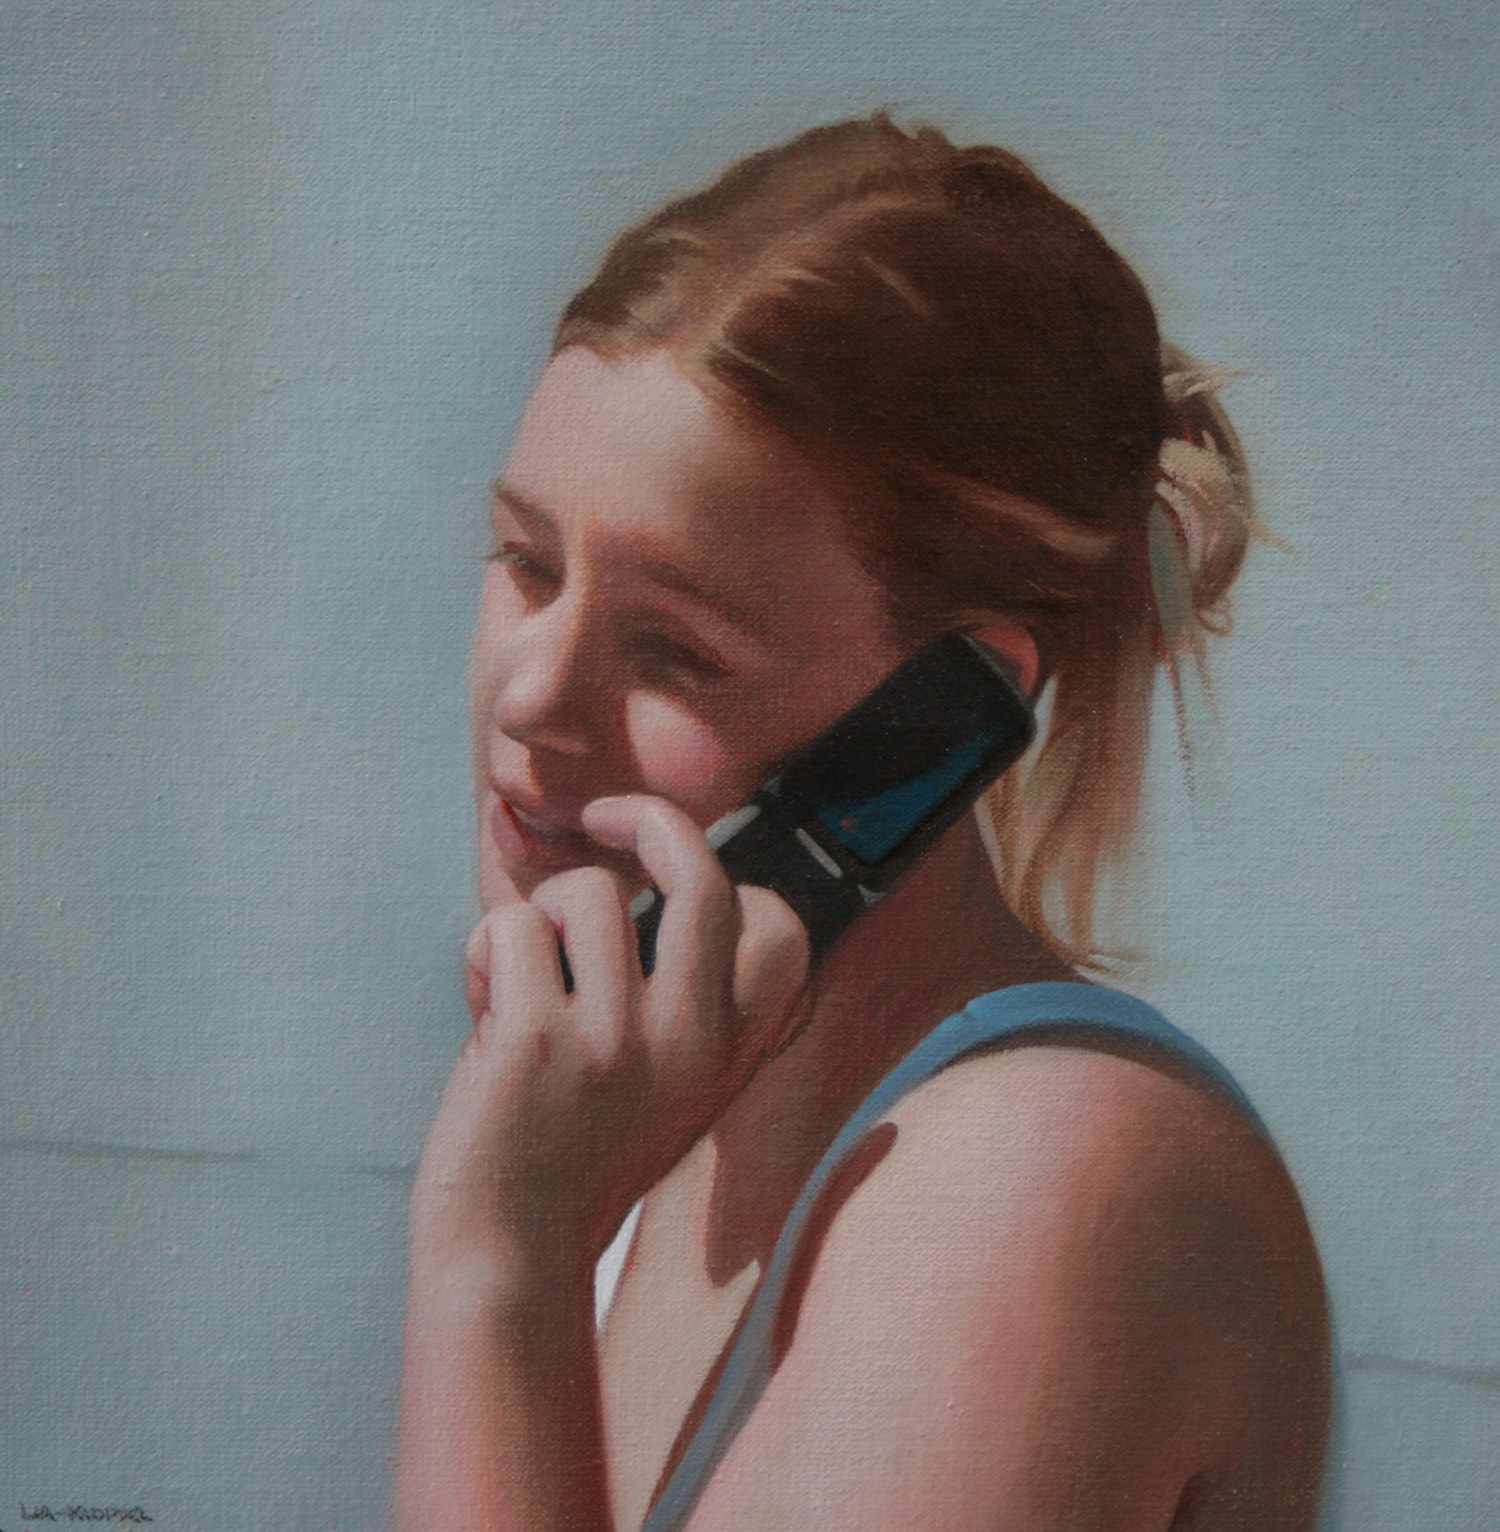 Talk , 2008, Oil on linen, 11 x 11 inches, Private collection